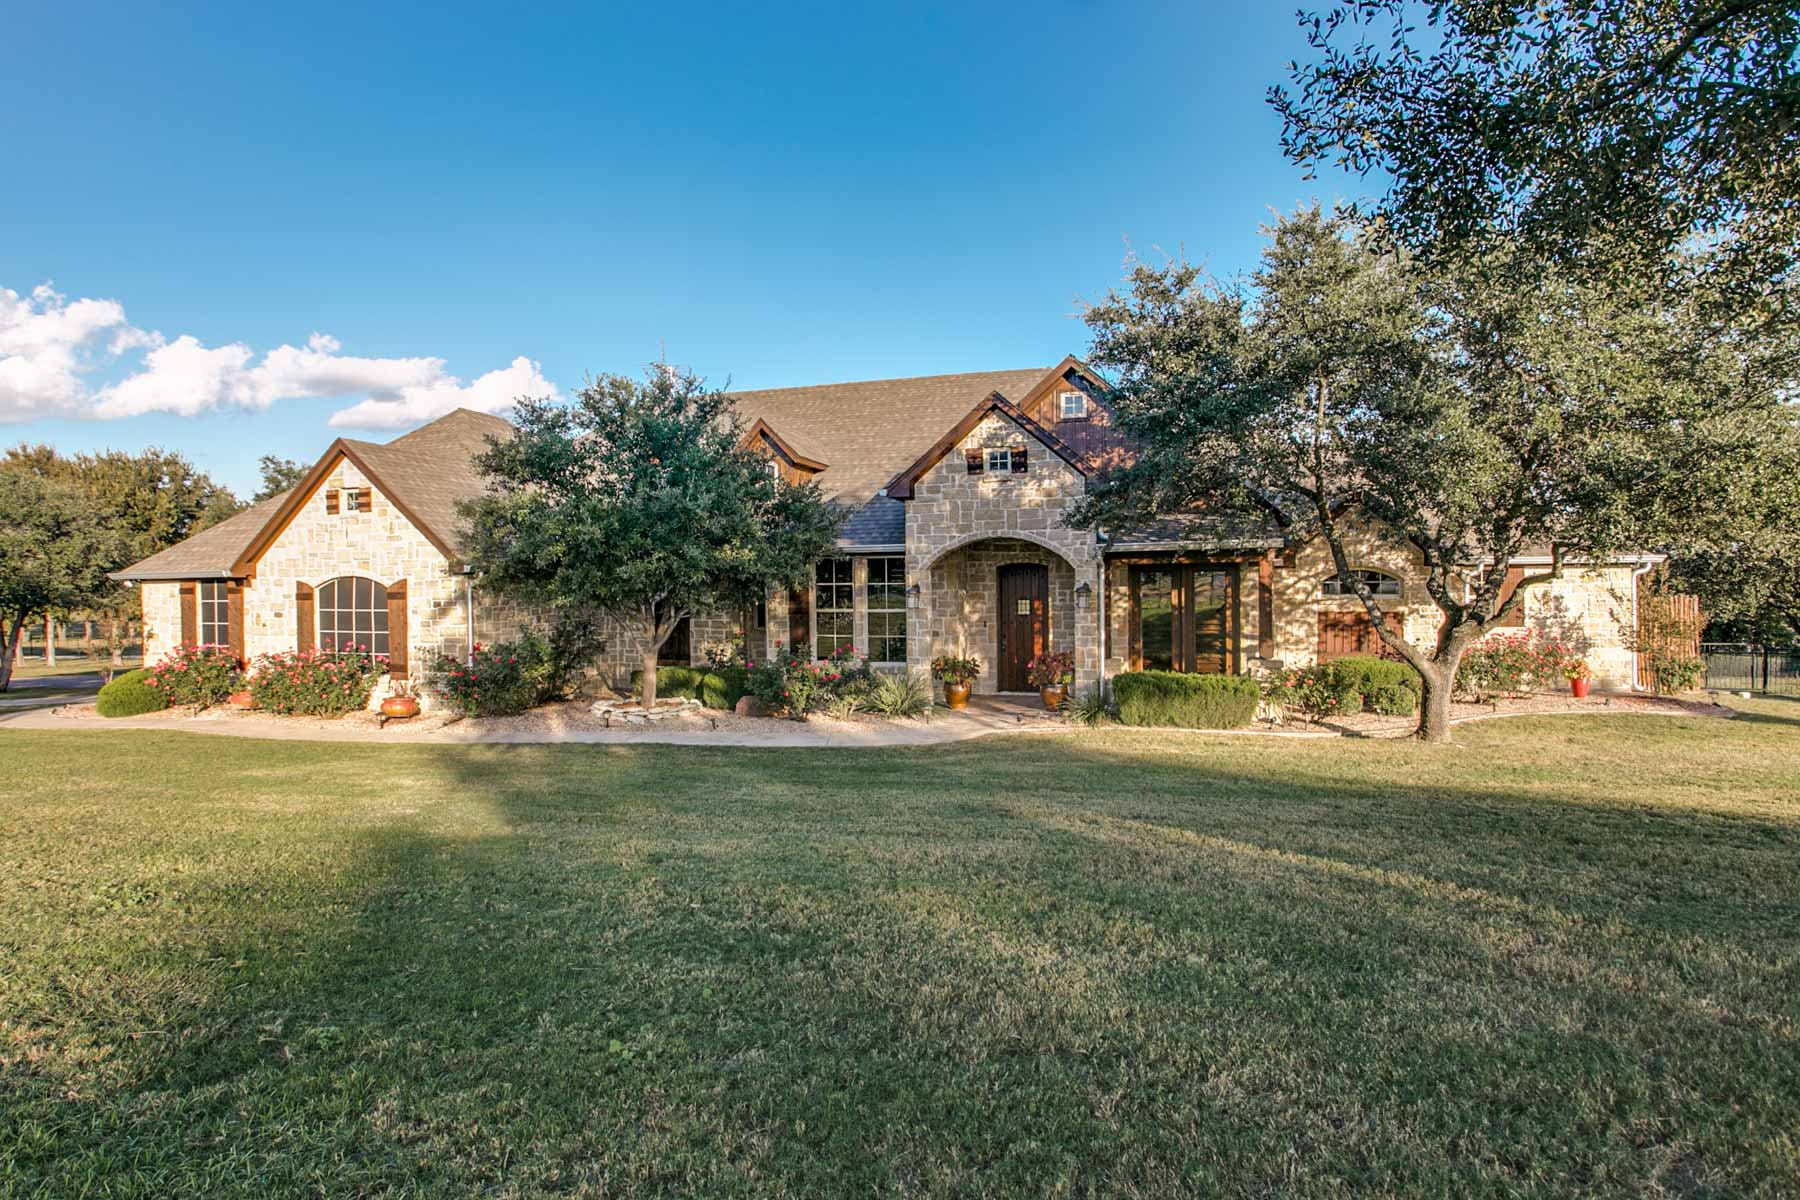 Single Family Home for Sale at 257 Silver Spur, Weatherford Weatherford, Texas 76087 United States